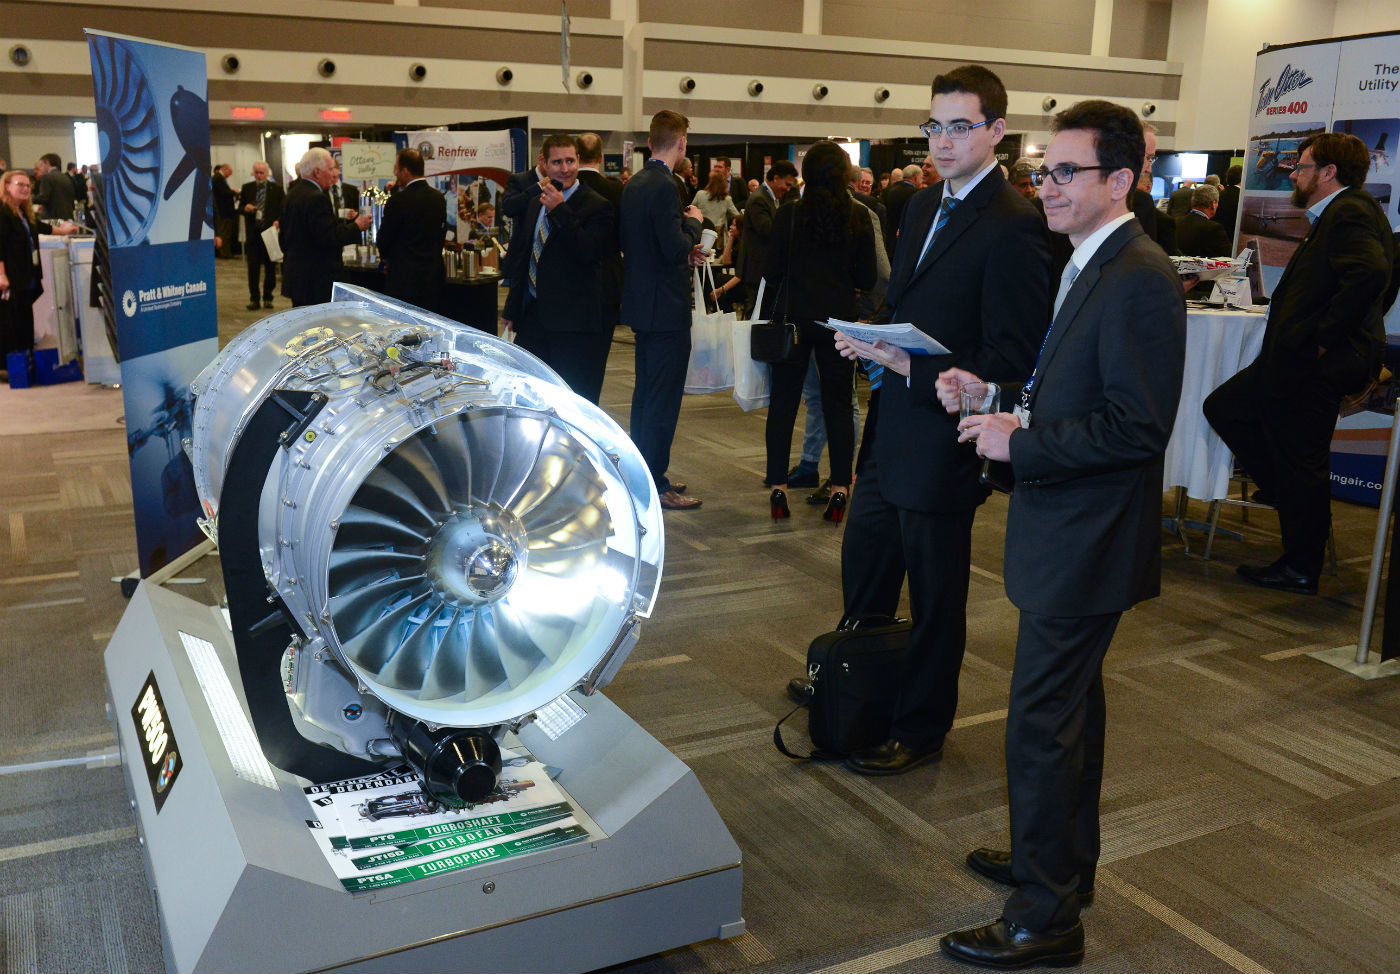 AIAC expects to welcome more than 1,000 attendees, including government officials, representatives of original equipment manufacturers like Airbus, Bell Helicopter and Lockheed Martin, as well as other industry leaders and international companies.